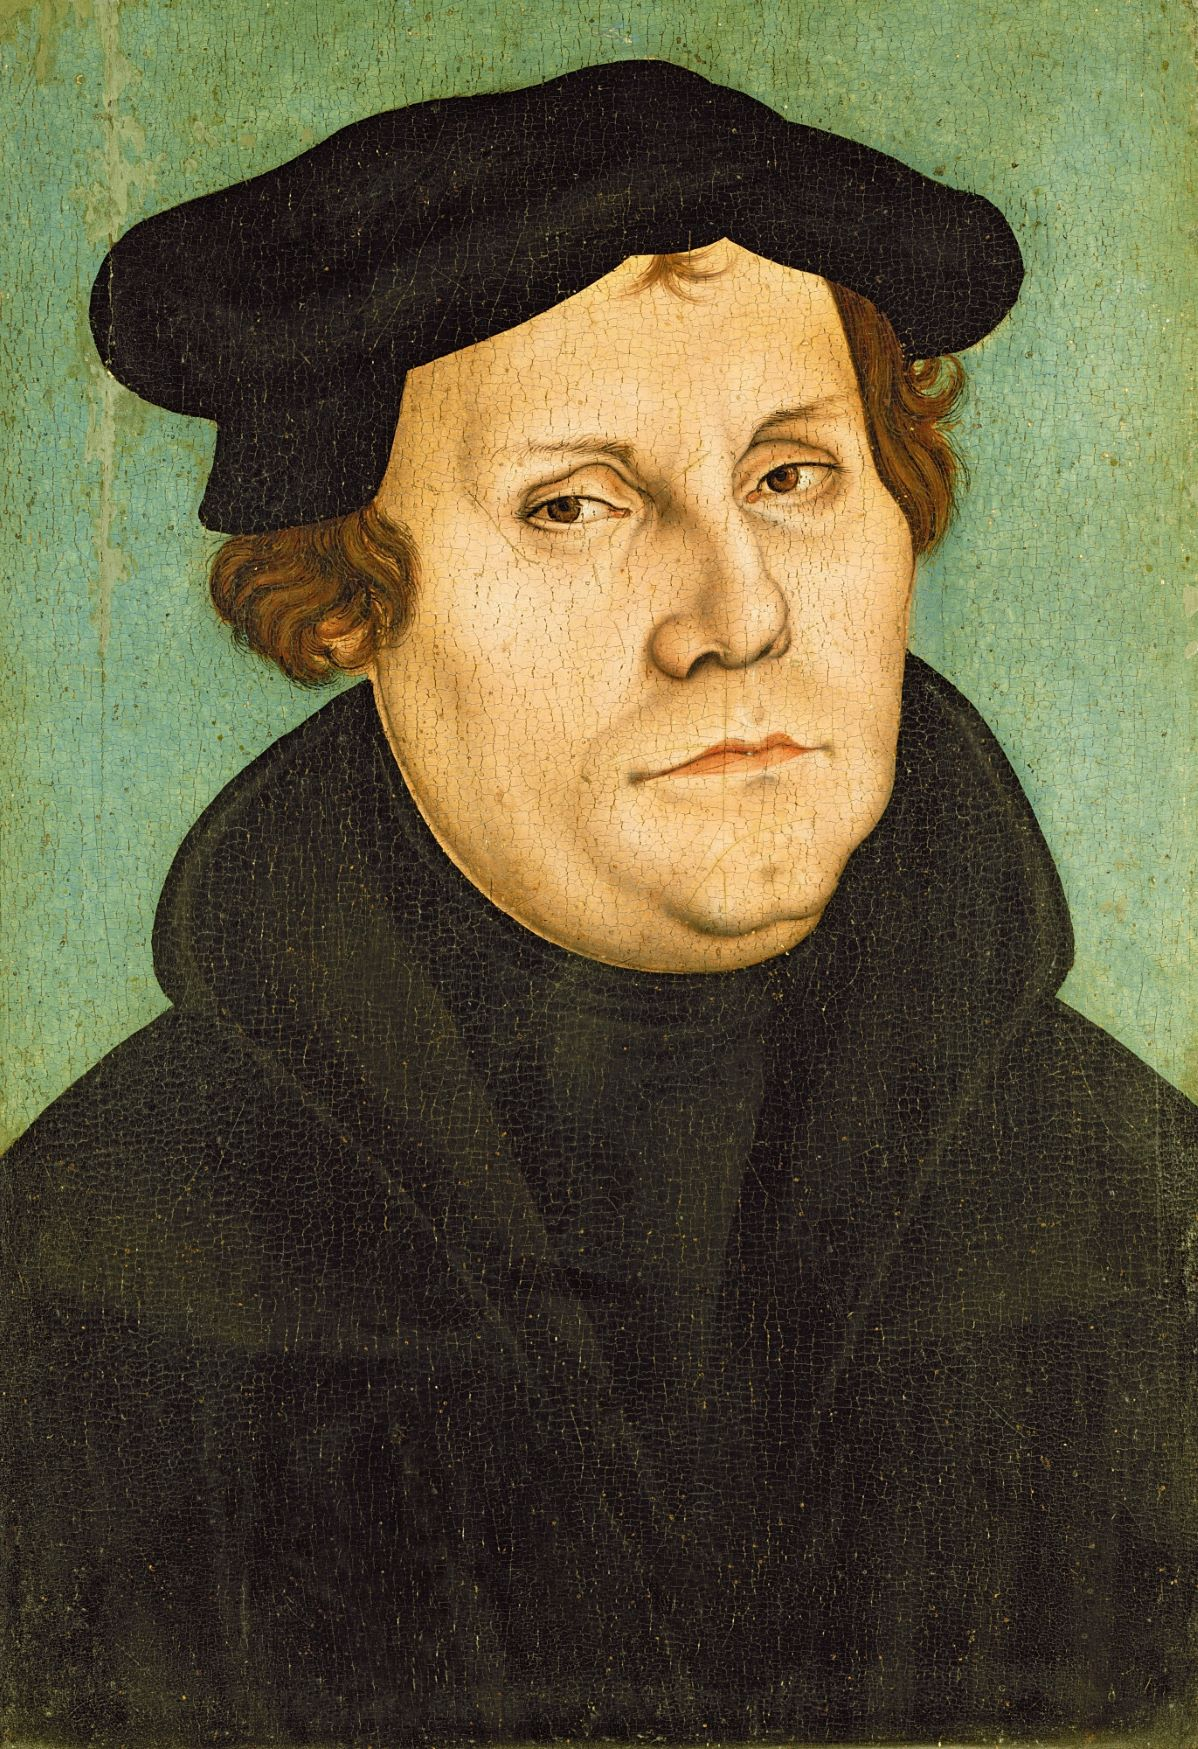 """Slide lecture by Dr. Erwin: """"The Gospel Made Visible: Lutheran Theology in the Paintings of Lucas Cranach, Father and Son"""""""